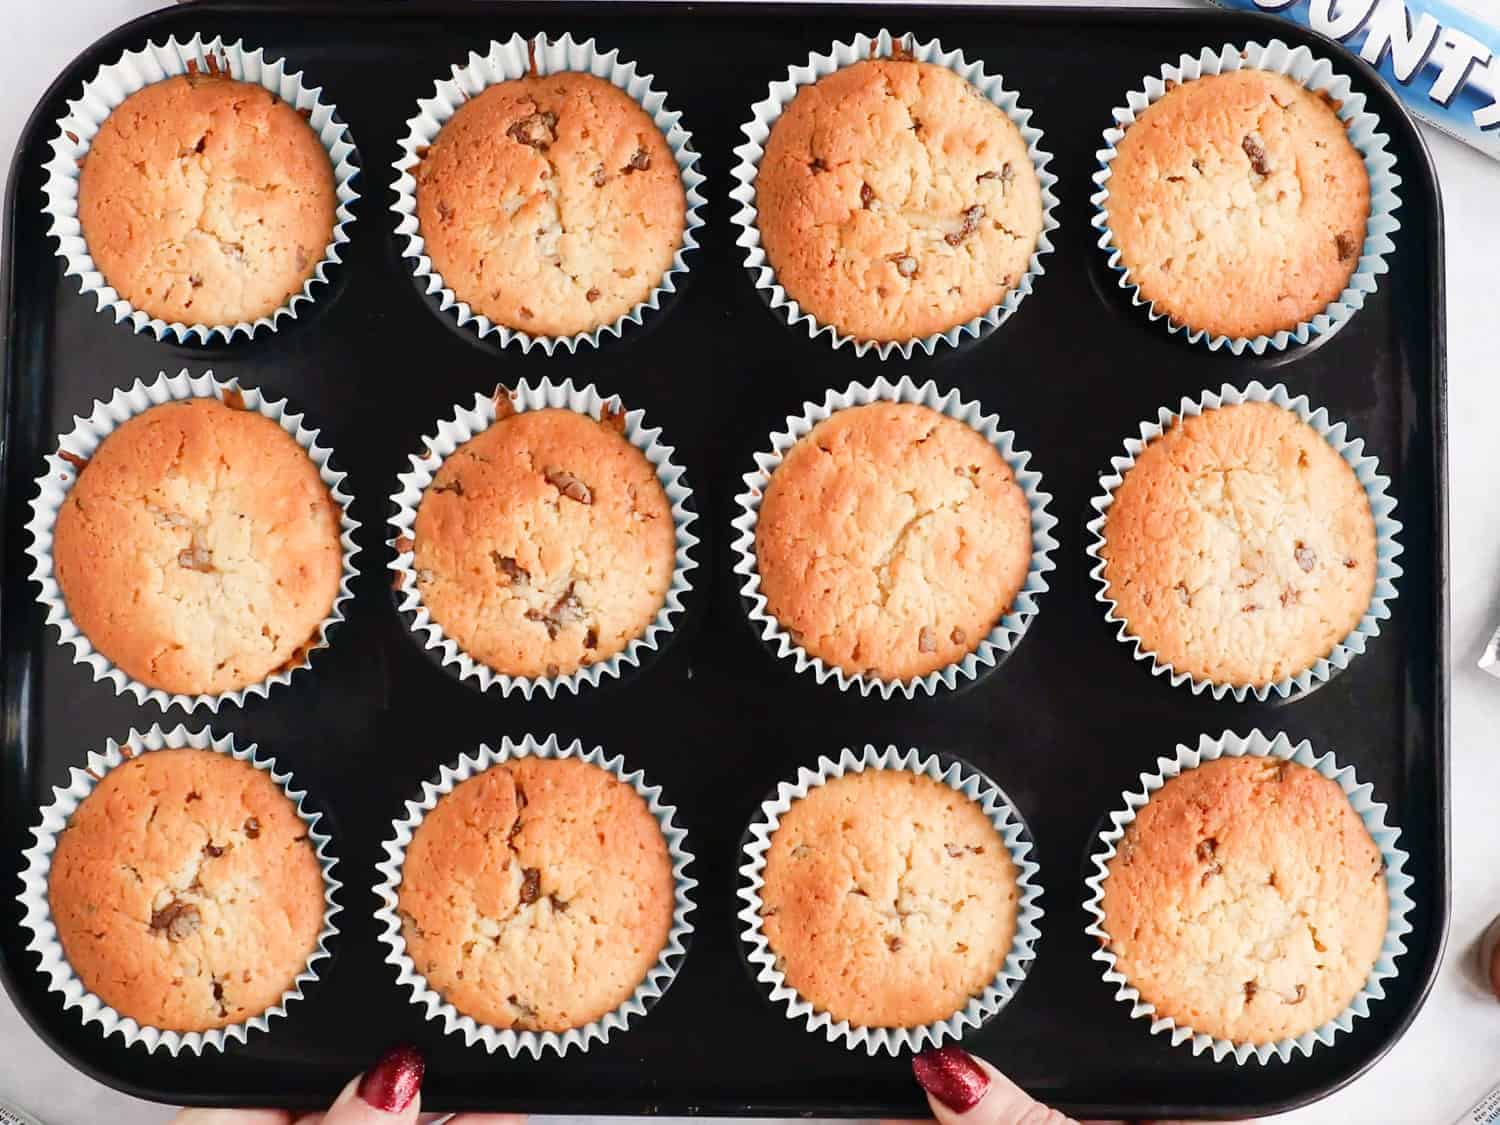 A baking tray filled with 12 cupcakes that have just come out of the oven